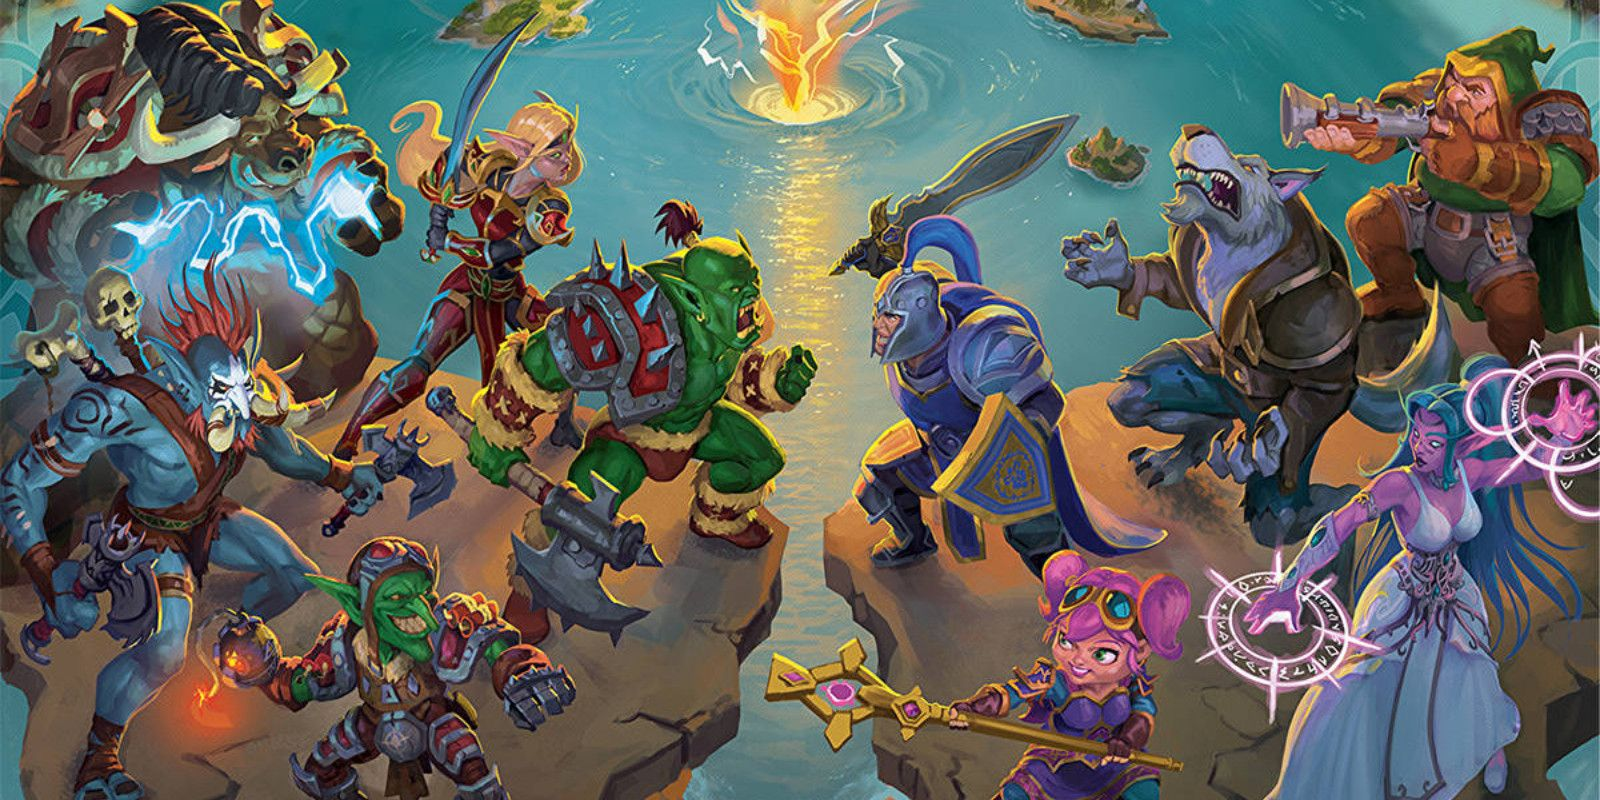 Get-your-fantasy-board-game-fix-with-a-Small-World-of-Warcraft.jpg